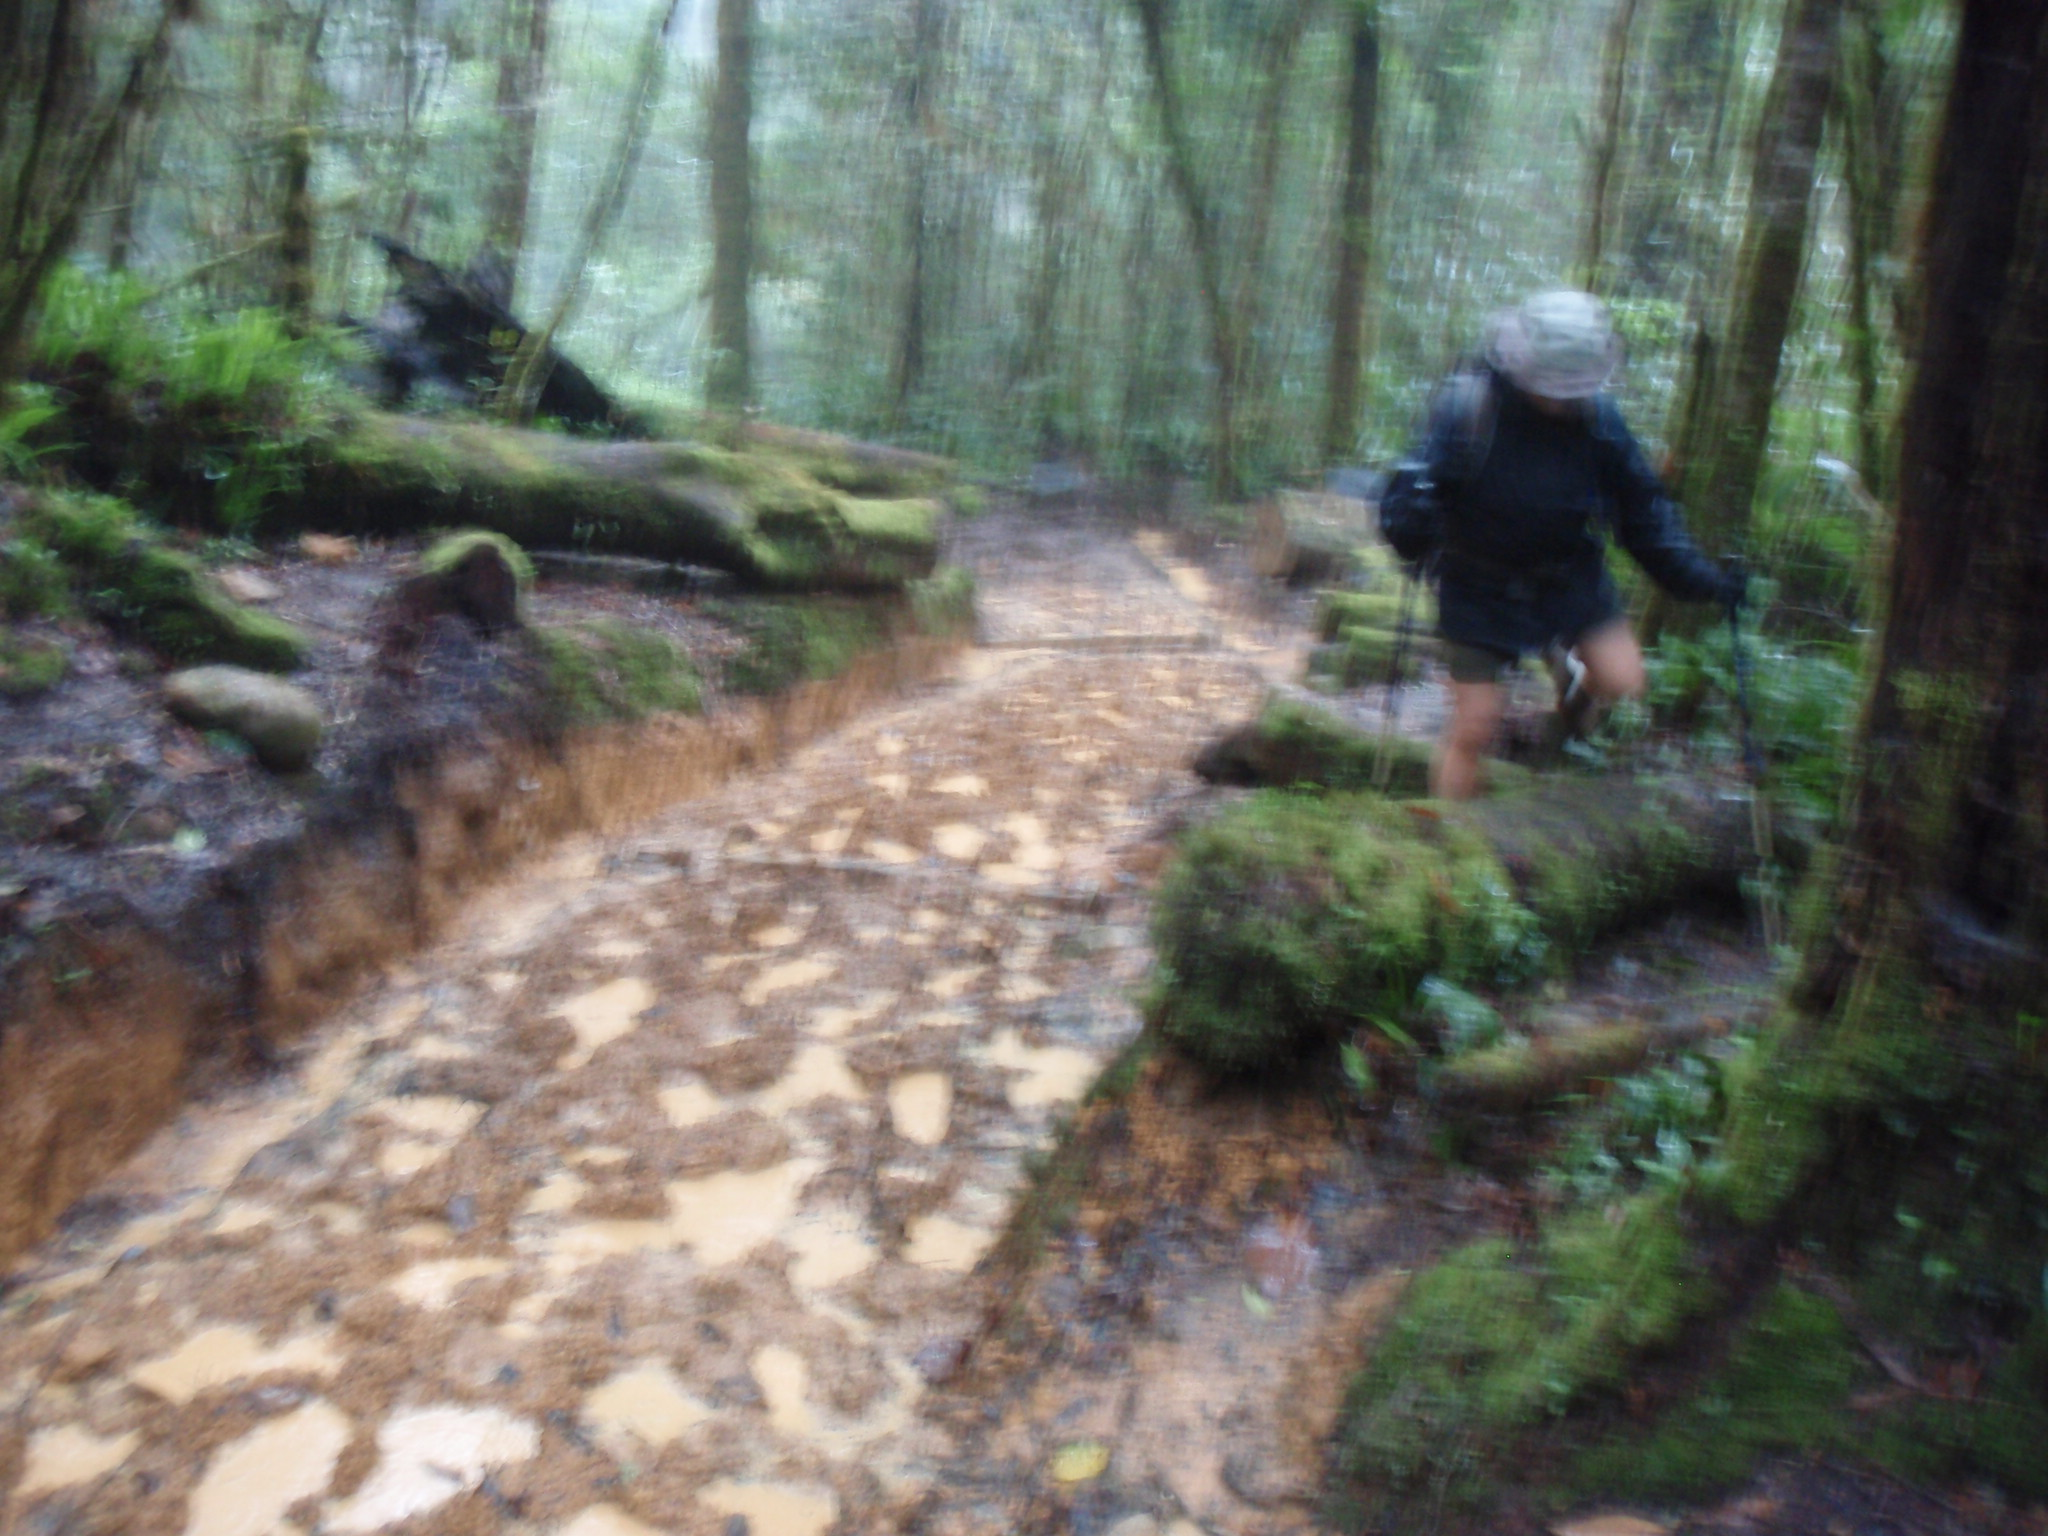 Descending a very muddy path in pouring rain